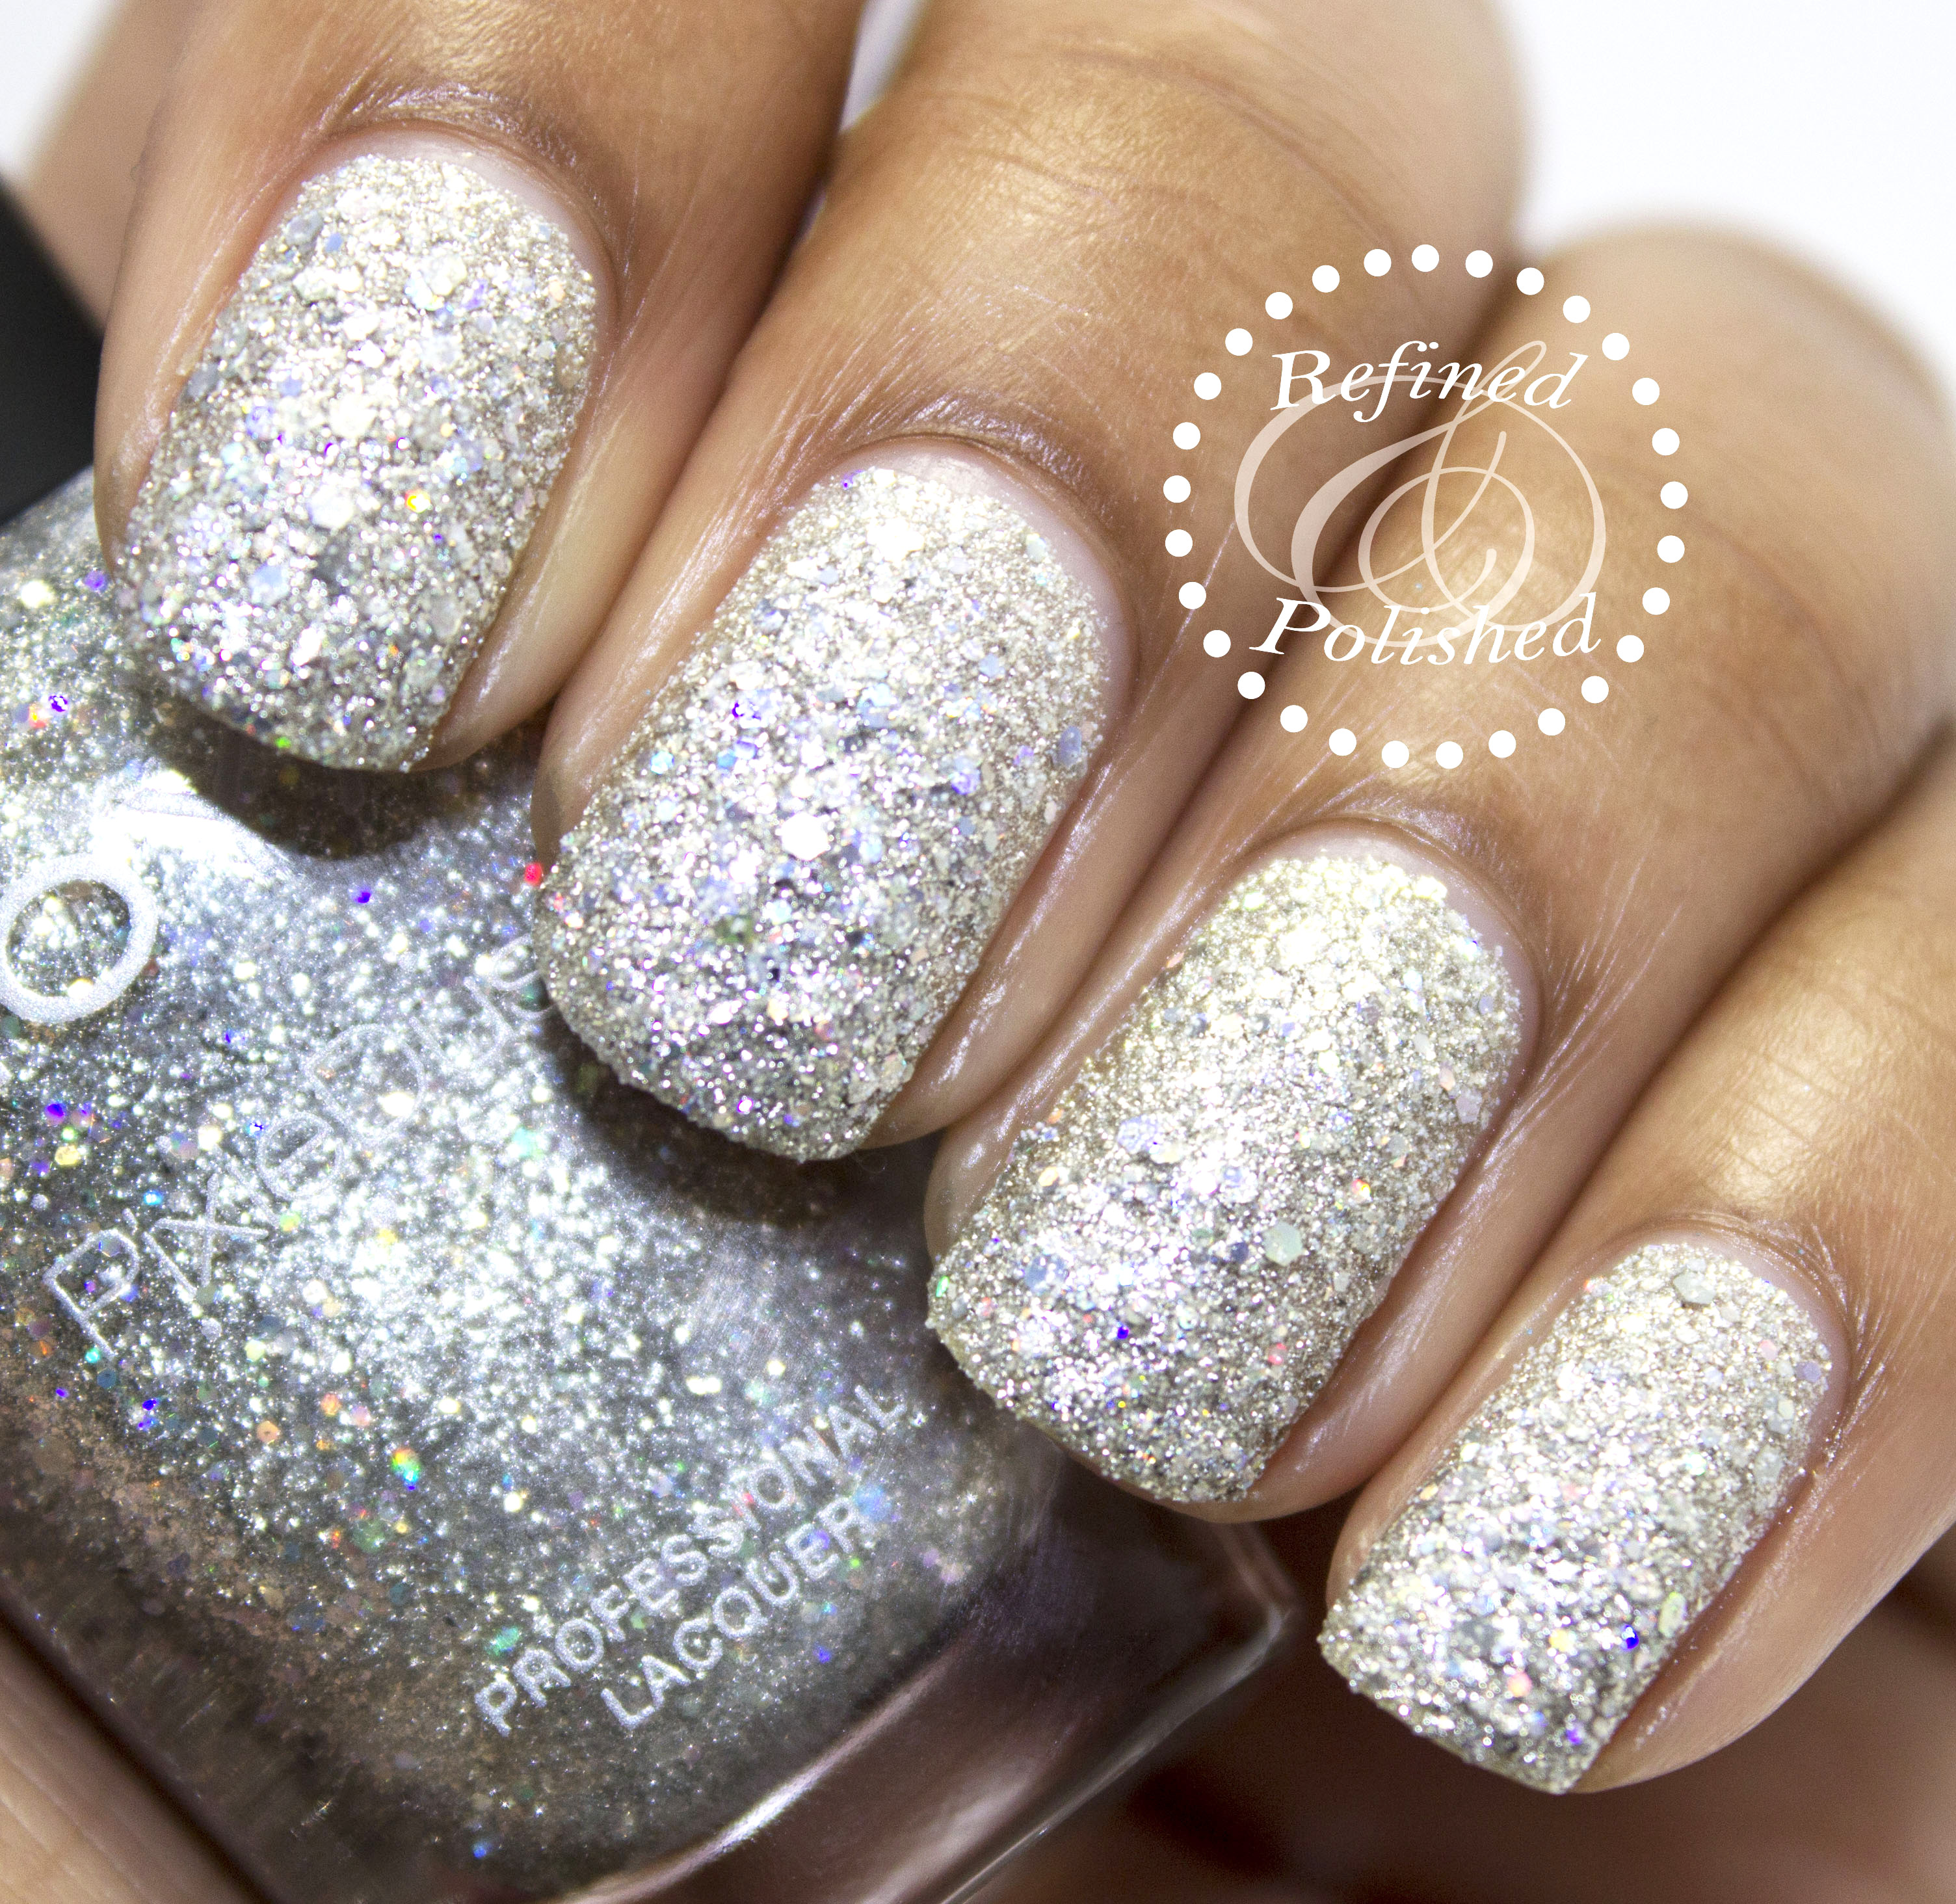 zoya magical pixiedust collection refined and polished